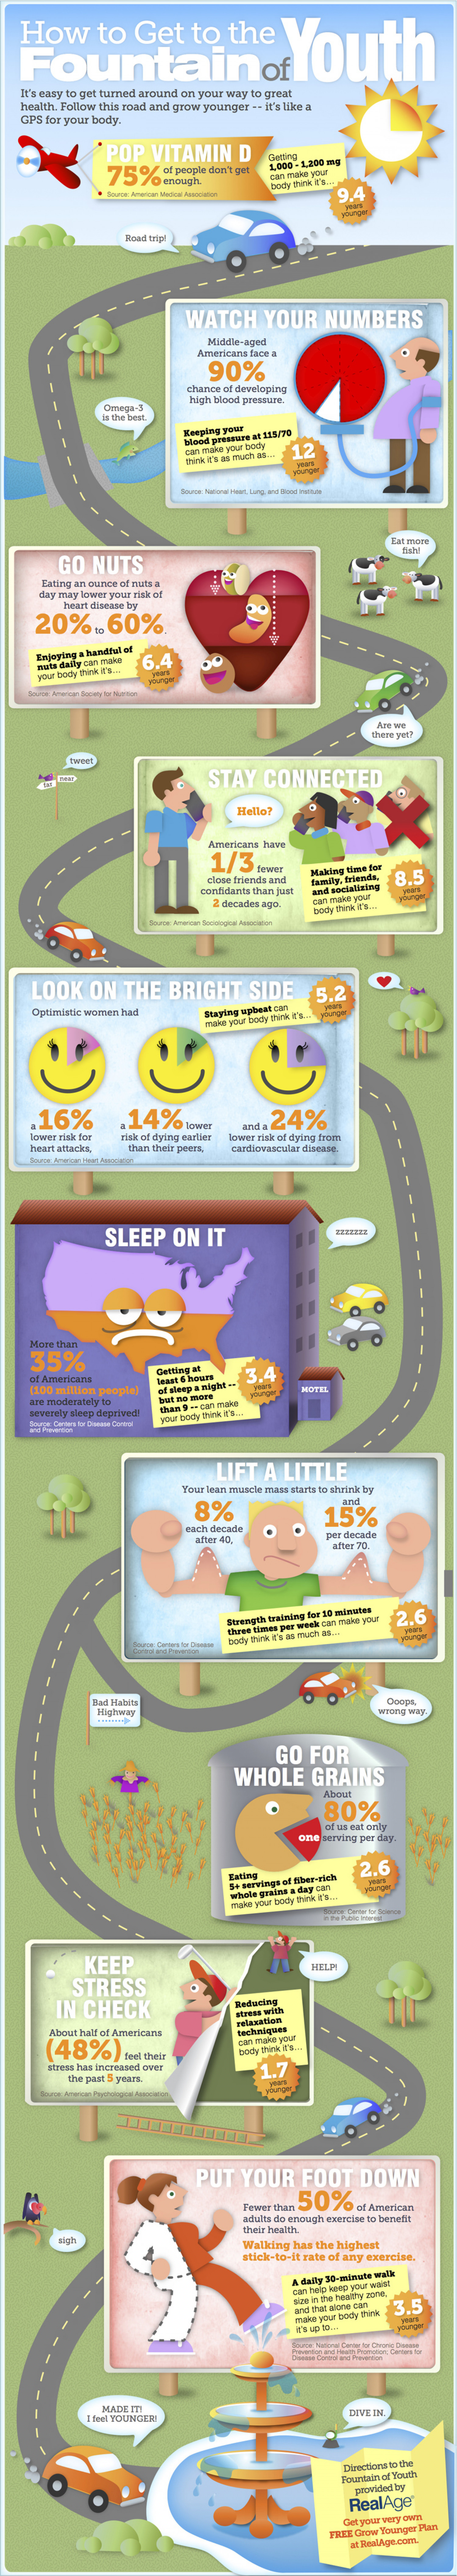 How to Get to the Fountain of Youth Infographic